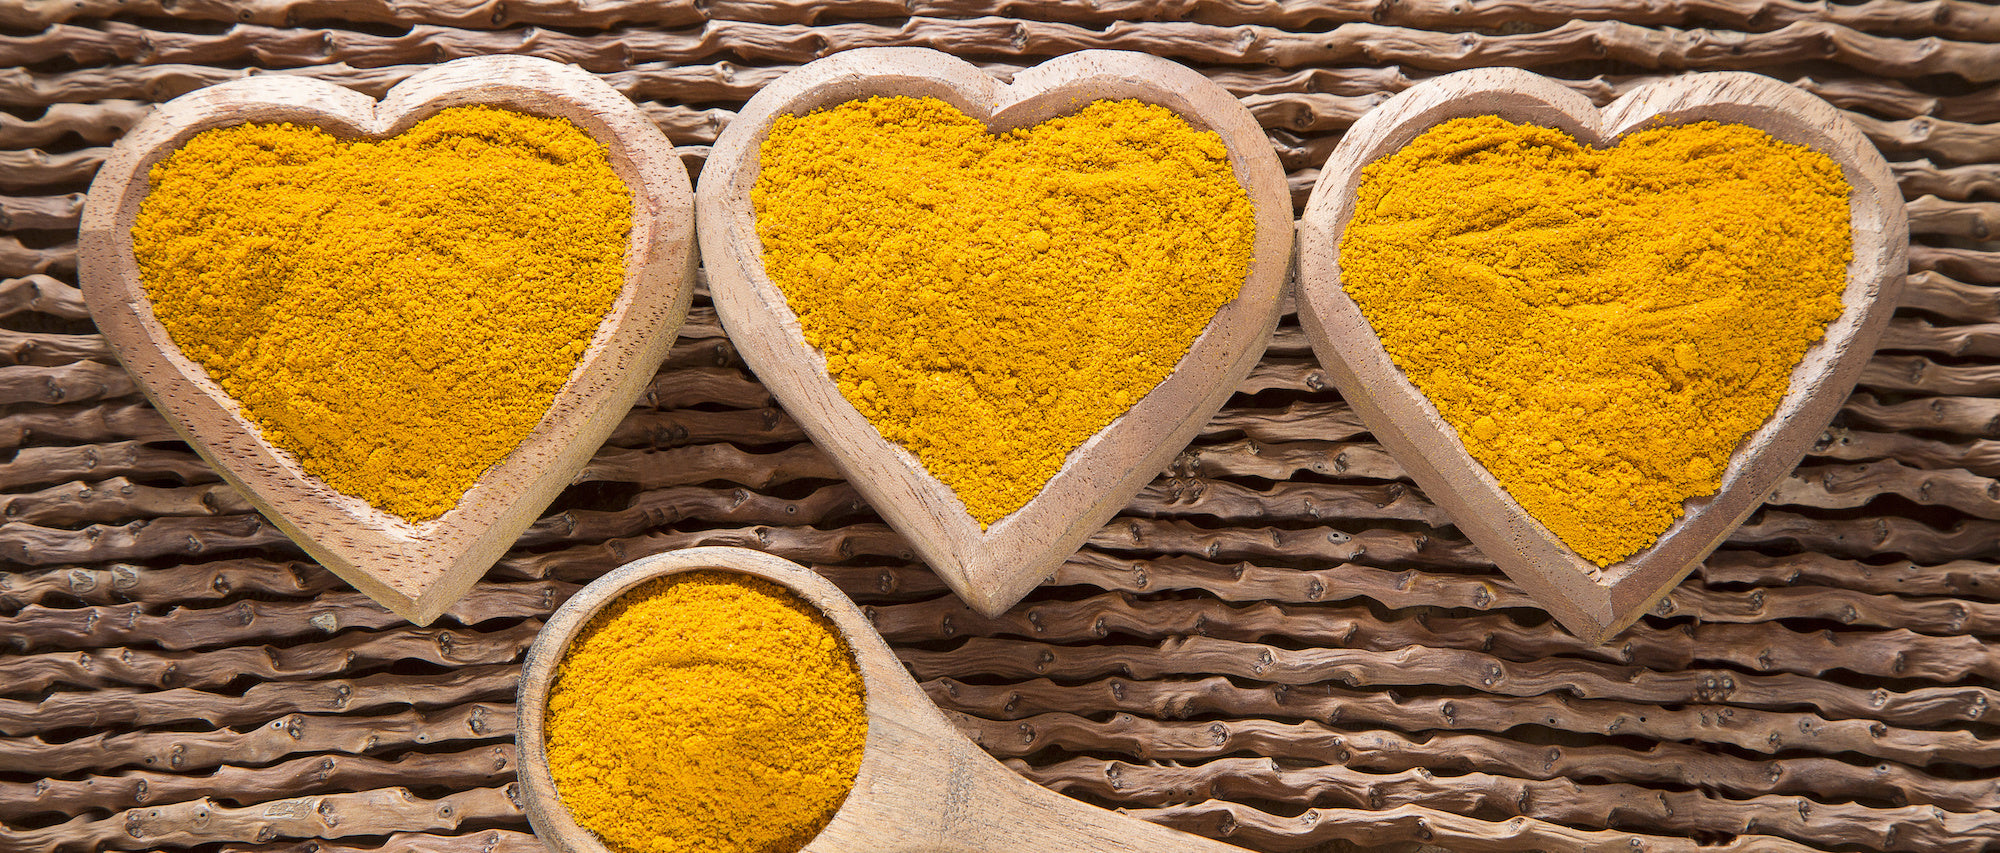 heart health turmeric powder